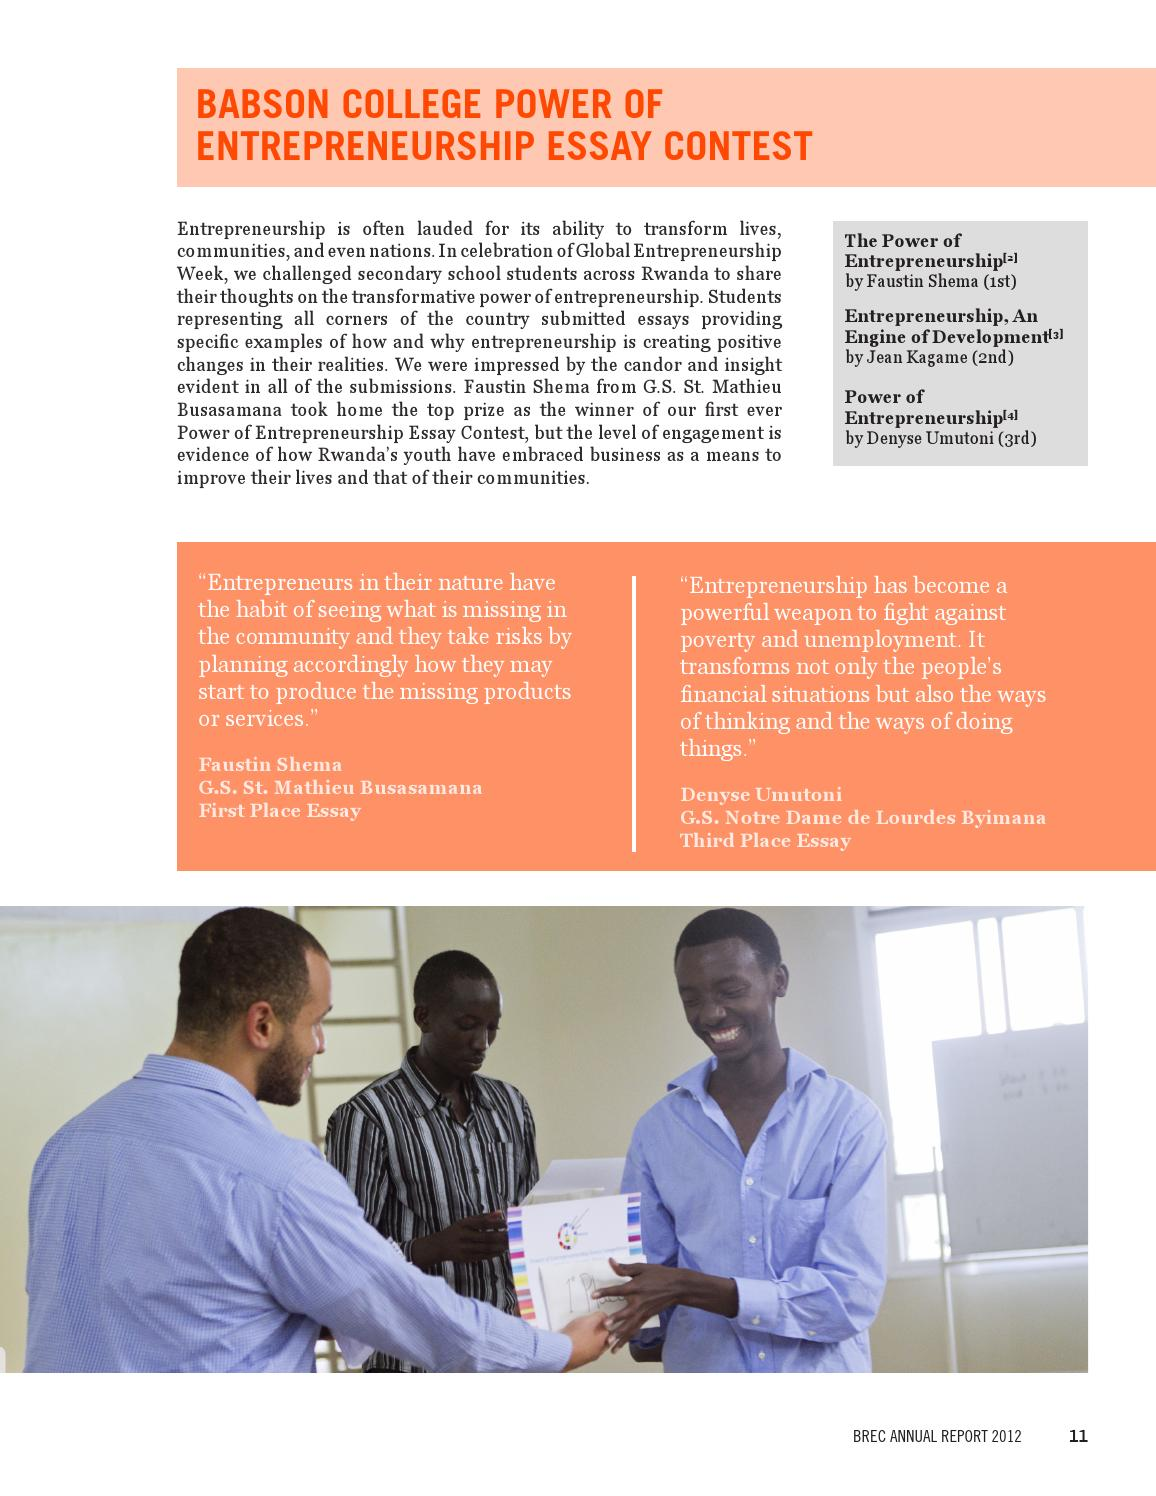 Brec  Annual Report By Babson Rwanda Entrepreneurship Center  Issuu  Ghostwriting Services Australia also Buy Assignments Online Uk  High School Admission Essay Samples